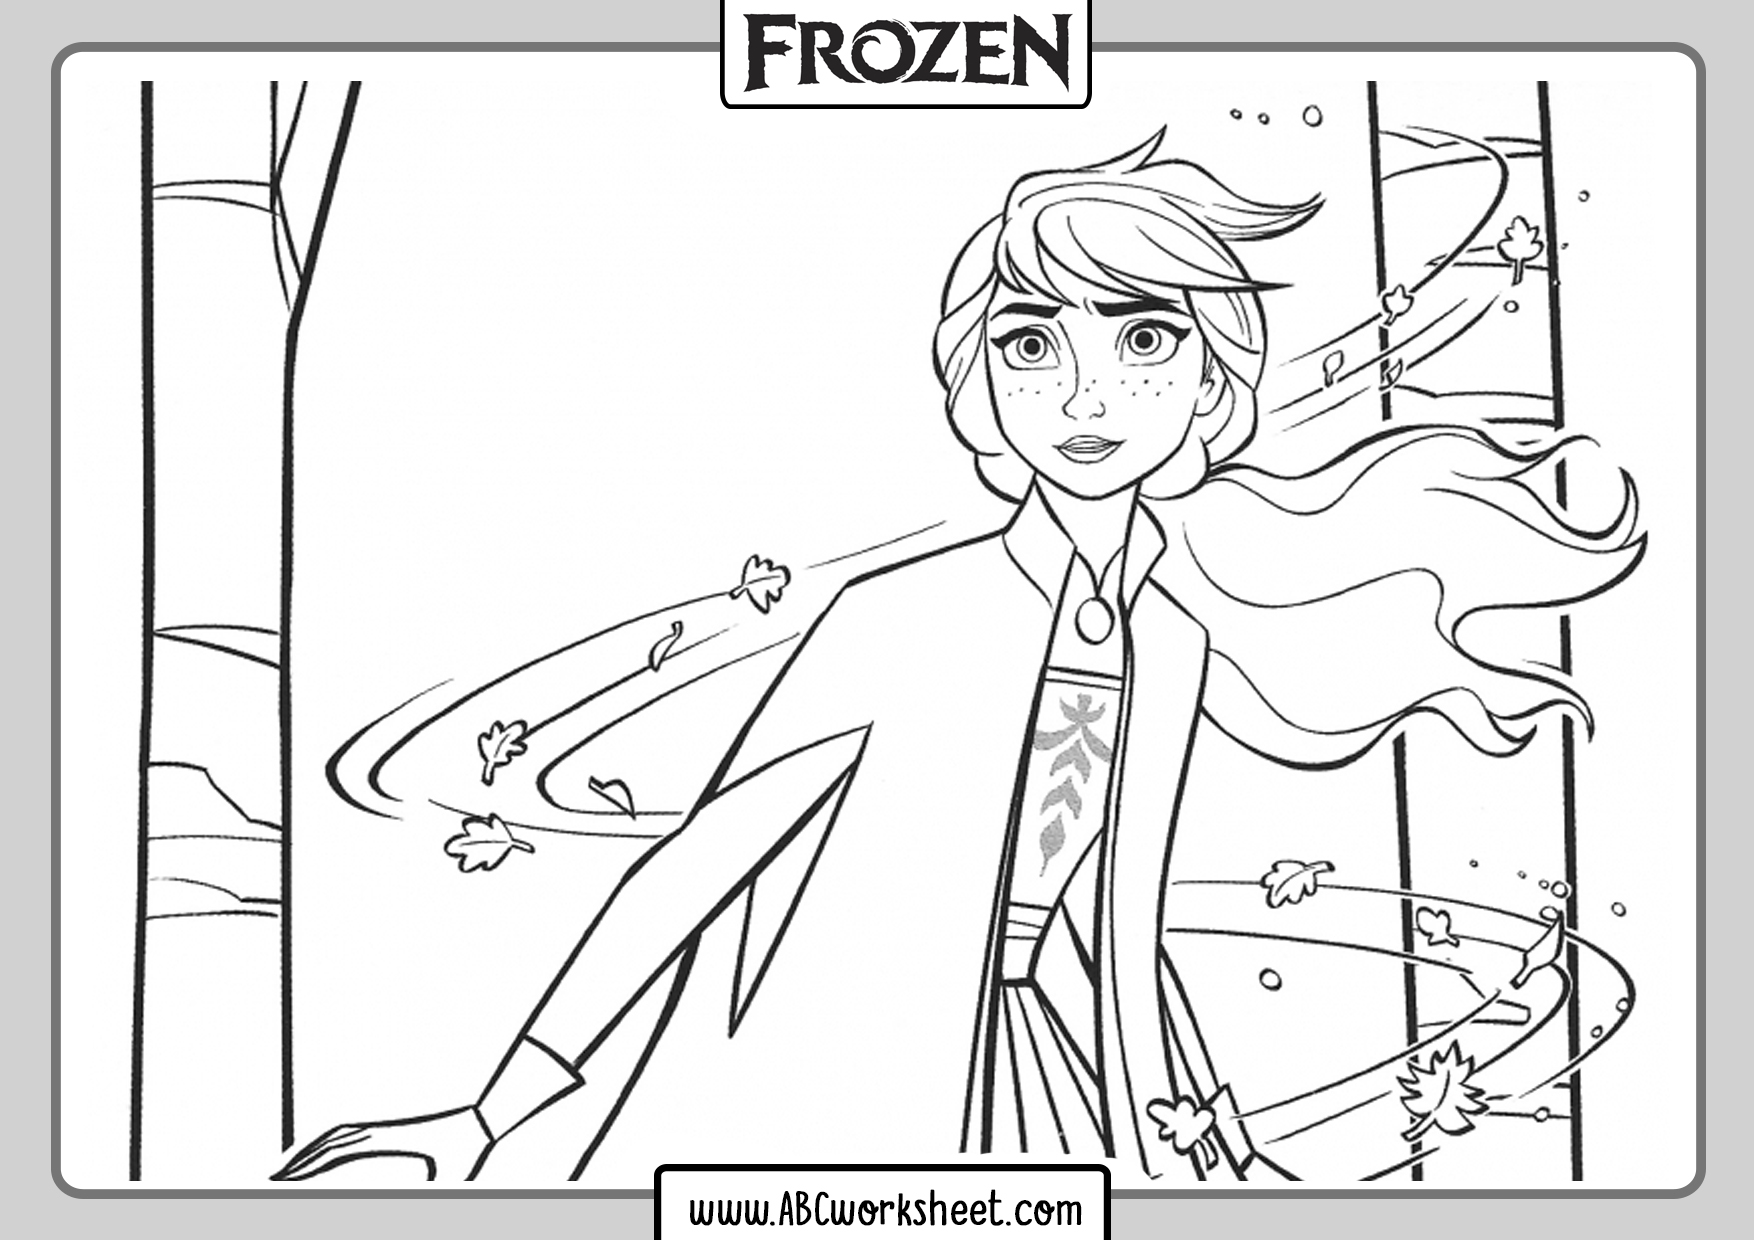 frozen 2 coloring pages new frozen 2 coloring pages with elsa youloveitcom pages 2 coloring frozen